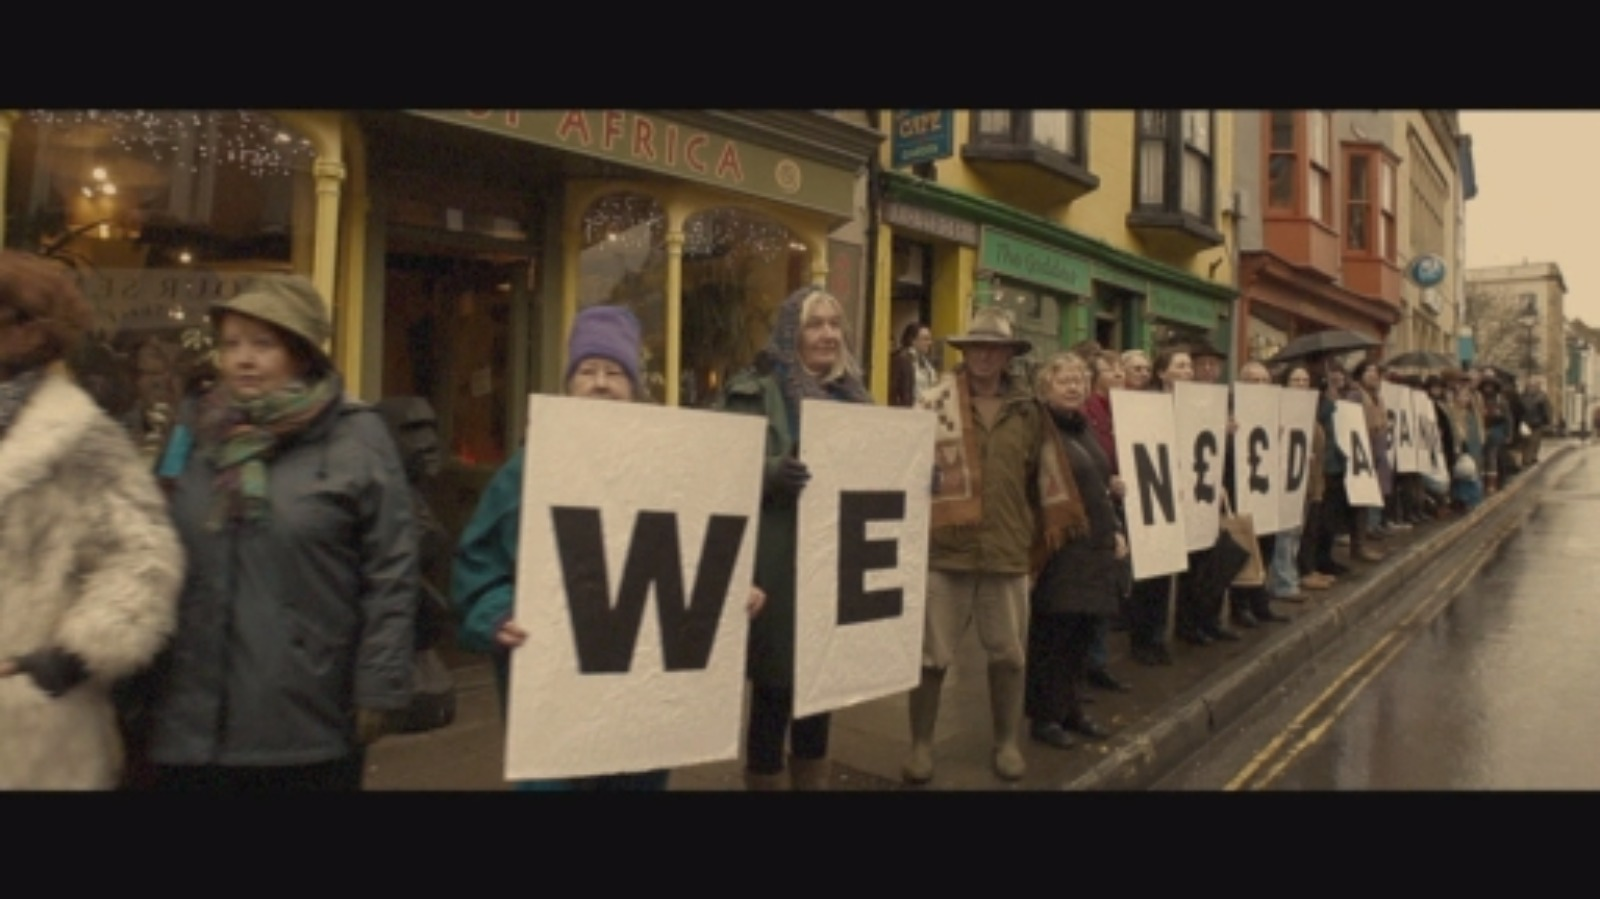 The world's longest bank queue? Protestors in Glastonbury fight to keep a local branch